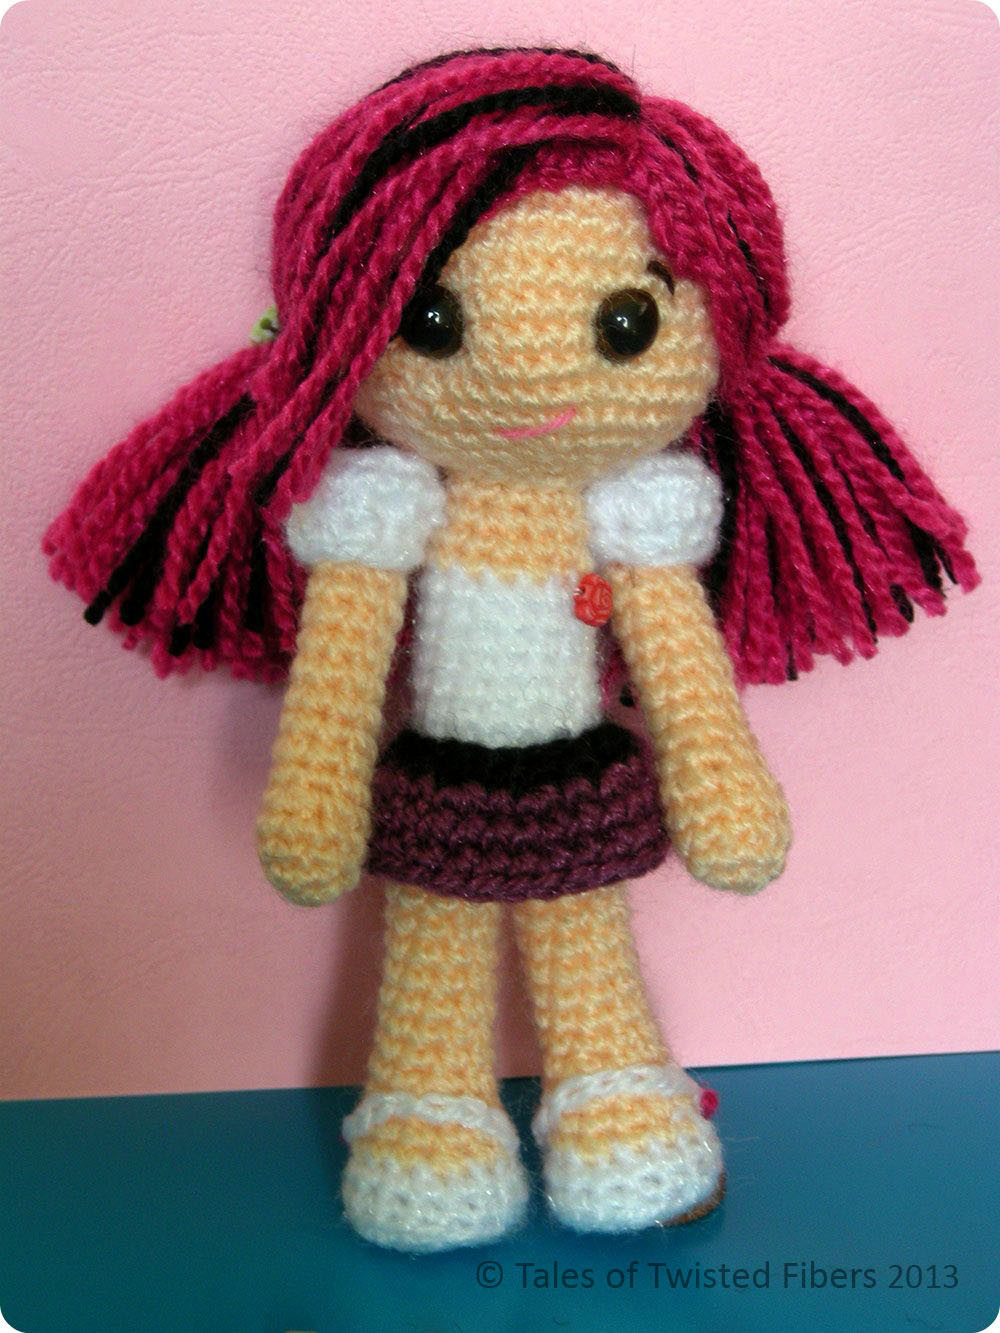 Free Crochet Doll Patterns Awesome Amy the Amigurumi Doll Free Pattern – Tales Of Twisted Fibers Of Great 49 Ideas Free Crochet Doll Patterns